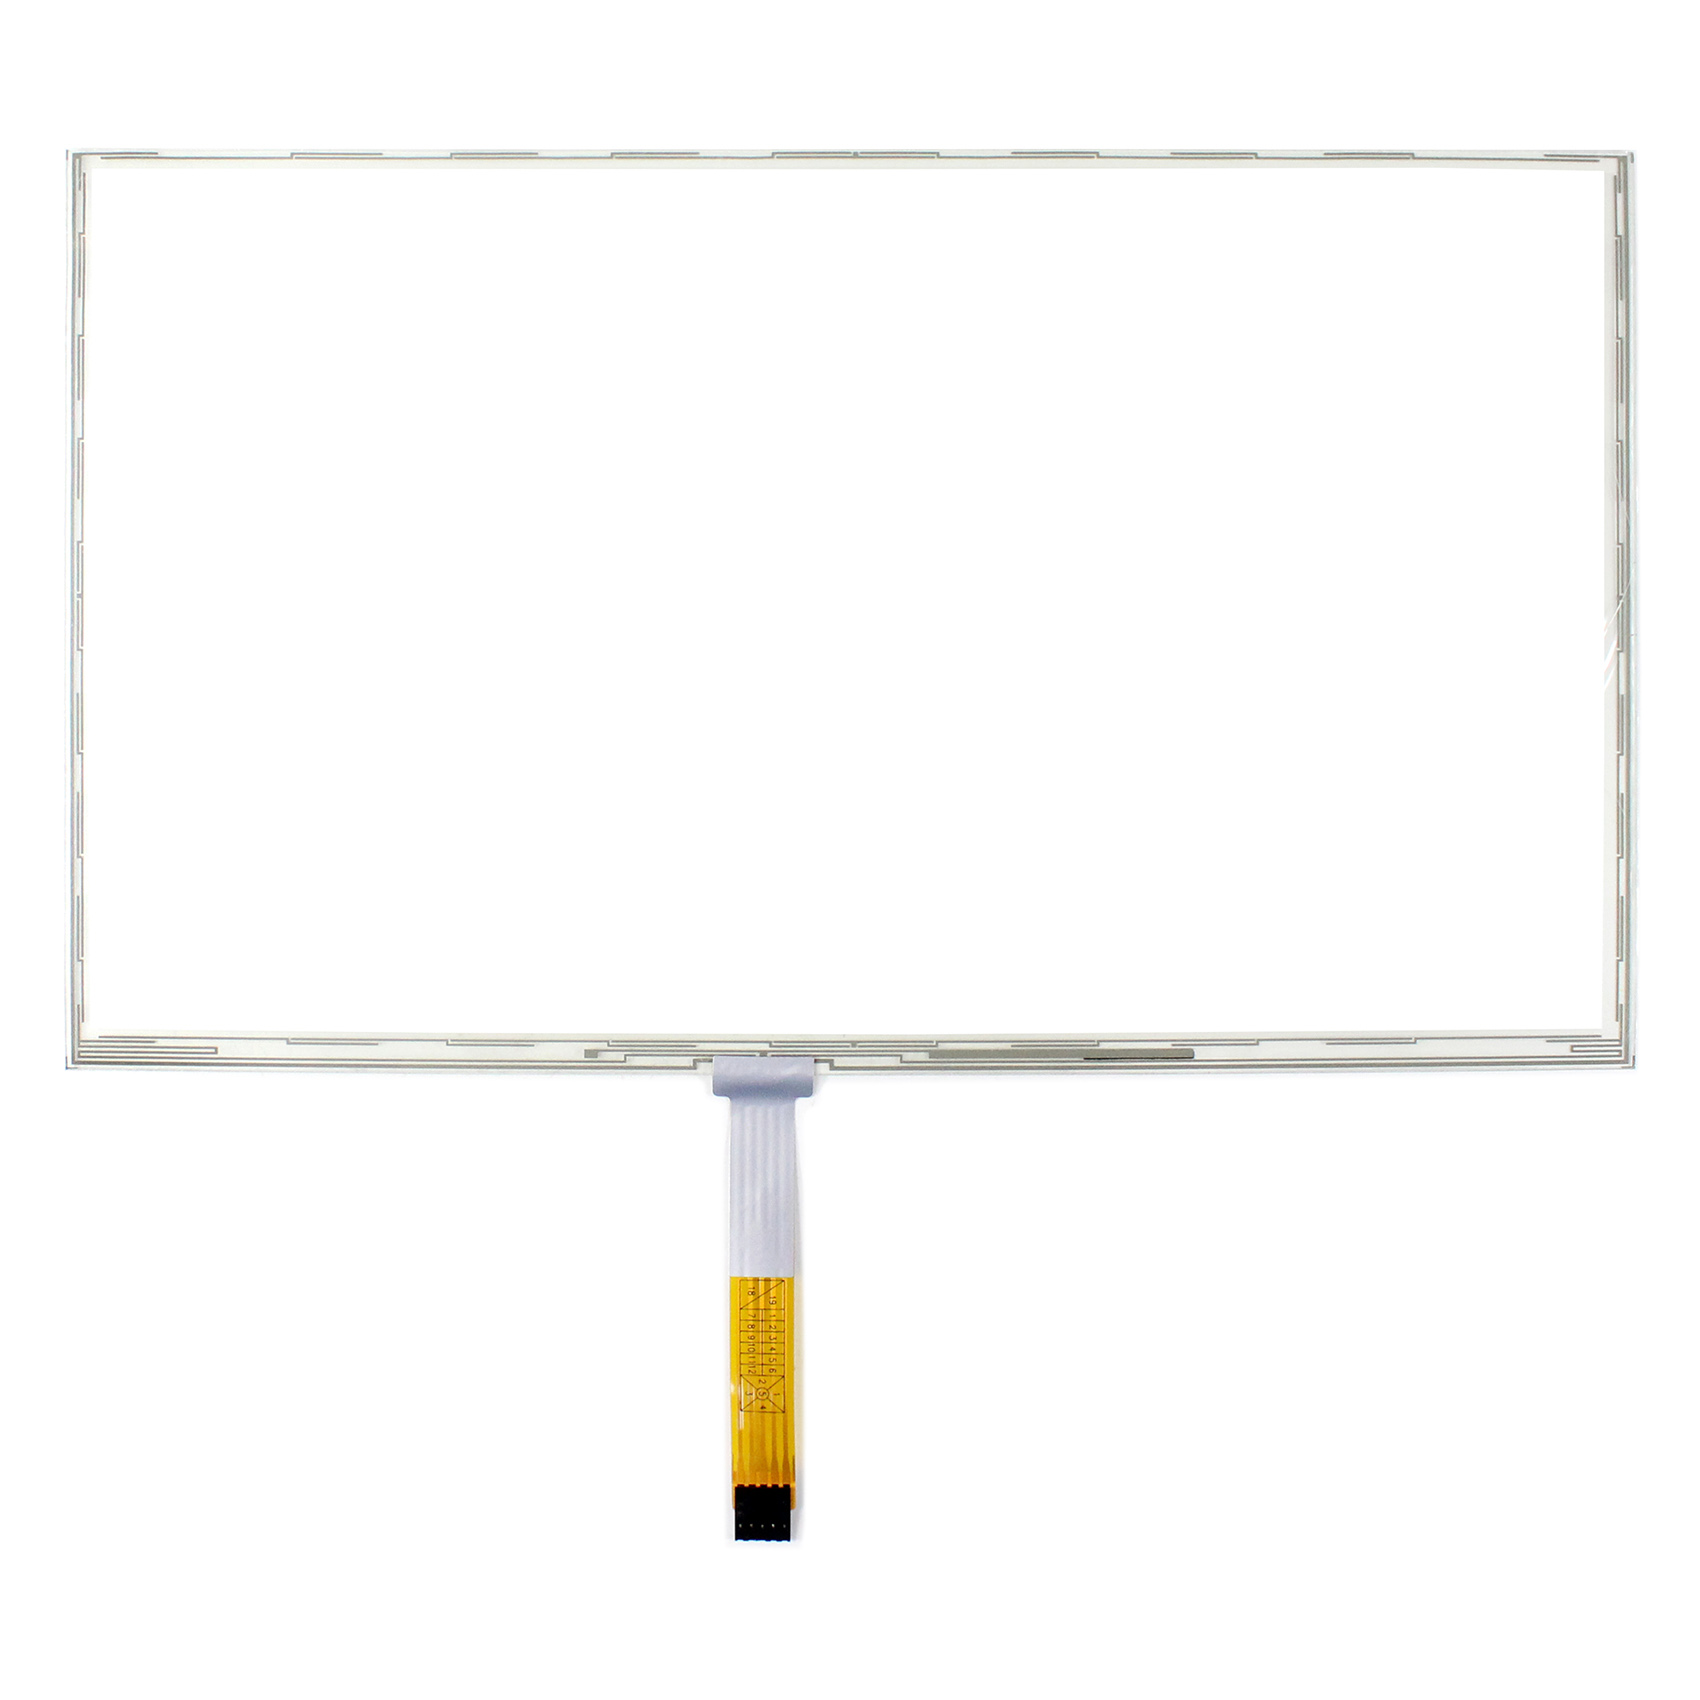 15.6 Resisitve Touch 359mm x 209mm 5-Wire Resistive Touch Panel 15.6inch  VS156TP-A2 Work For 15.6inch LCD Screen15.6 Resisitve Touch 359mm x 209mm 5-Wire Resistive Touch Panel 15.6inch  VS156TP-A2 Work For 15.6inch LCD Screen